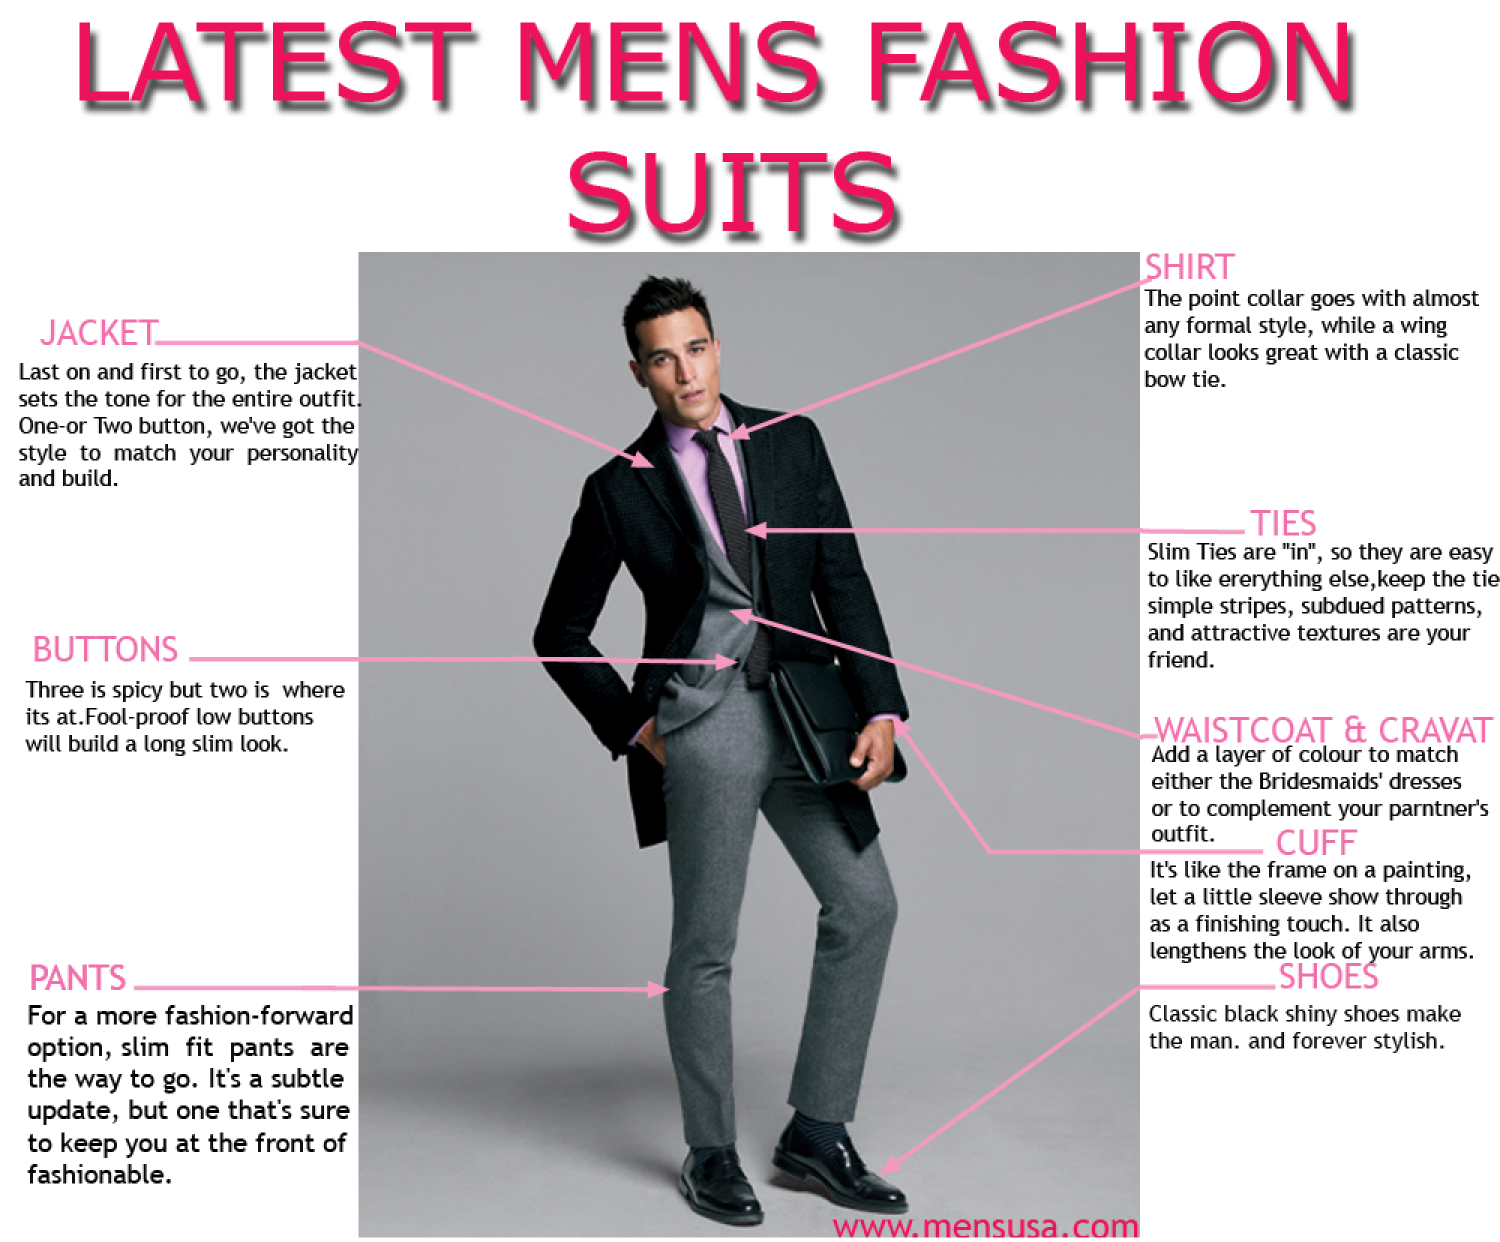 Latest Mens Fashion Suits Infographic